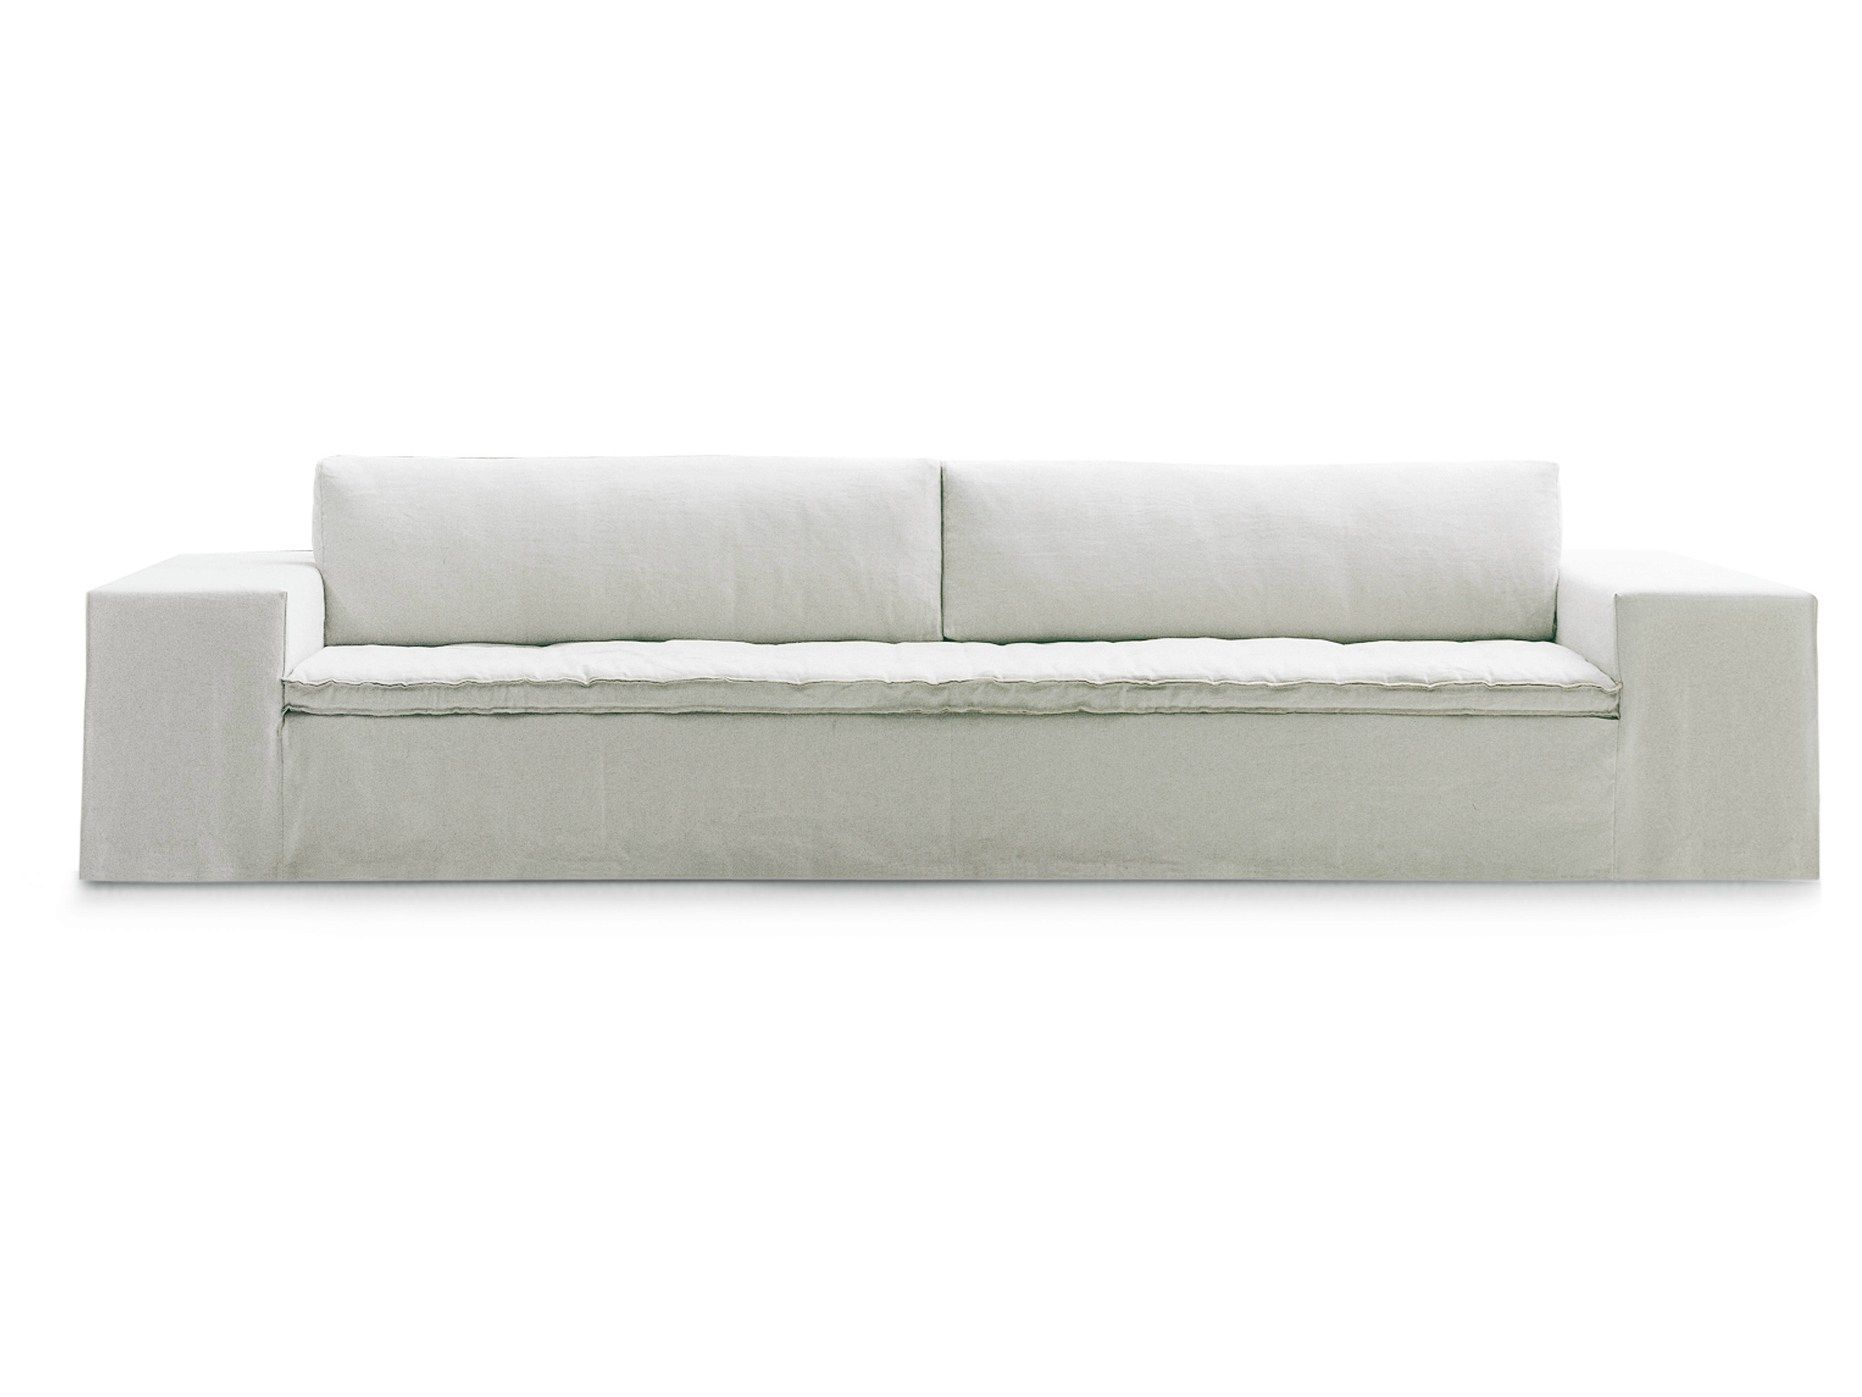 Fabric sofa with removable cover AIRPORT by Poliform design Paola